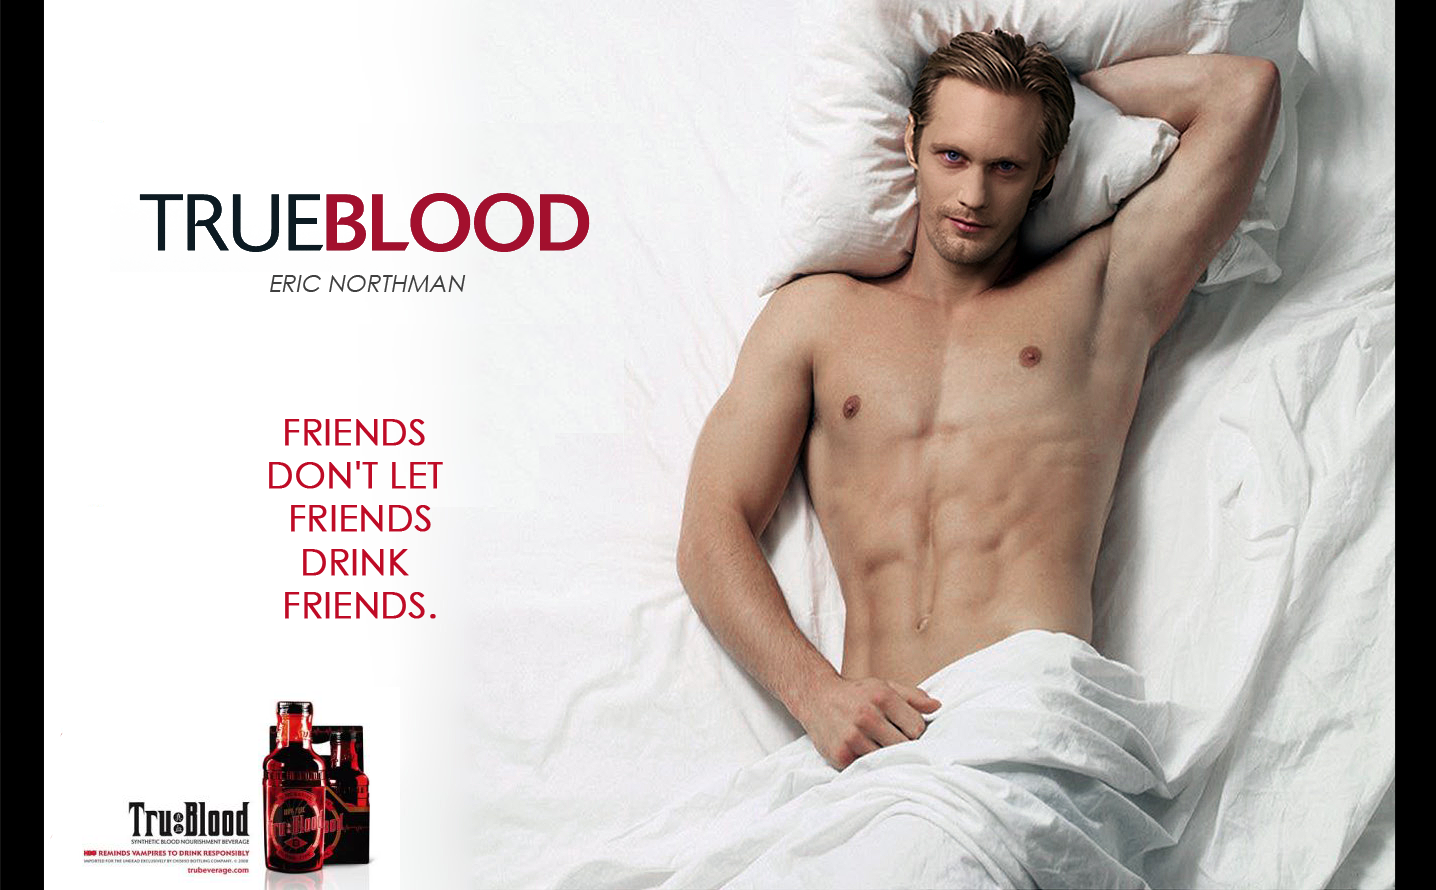 eye candy for women and gay men, in True Blood